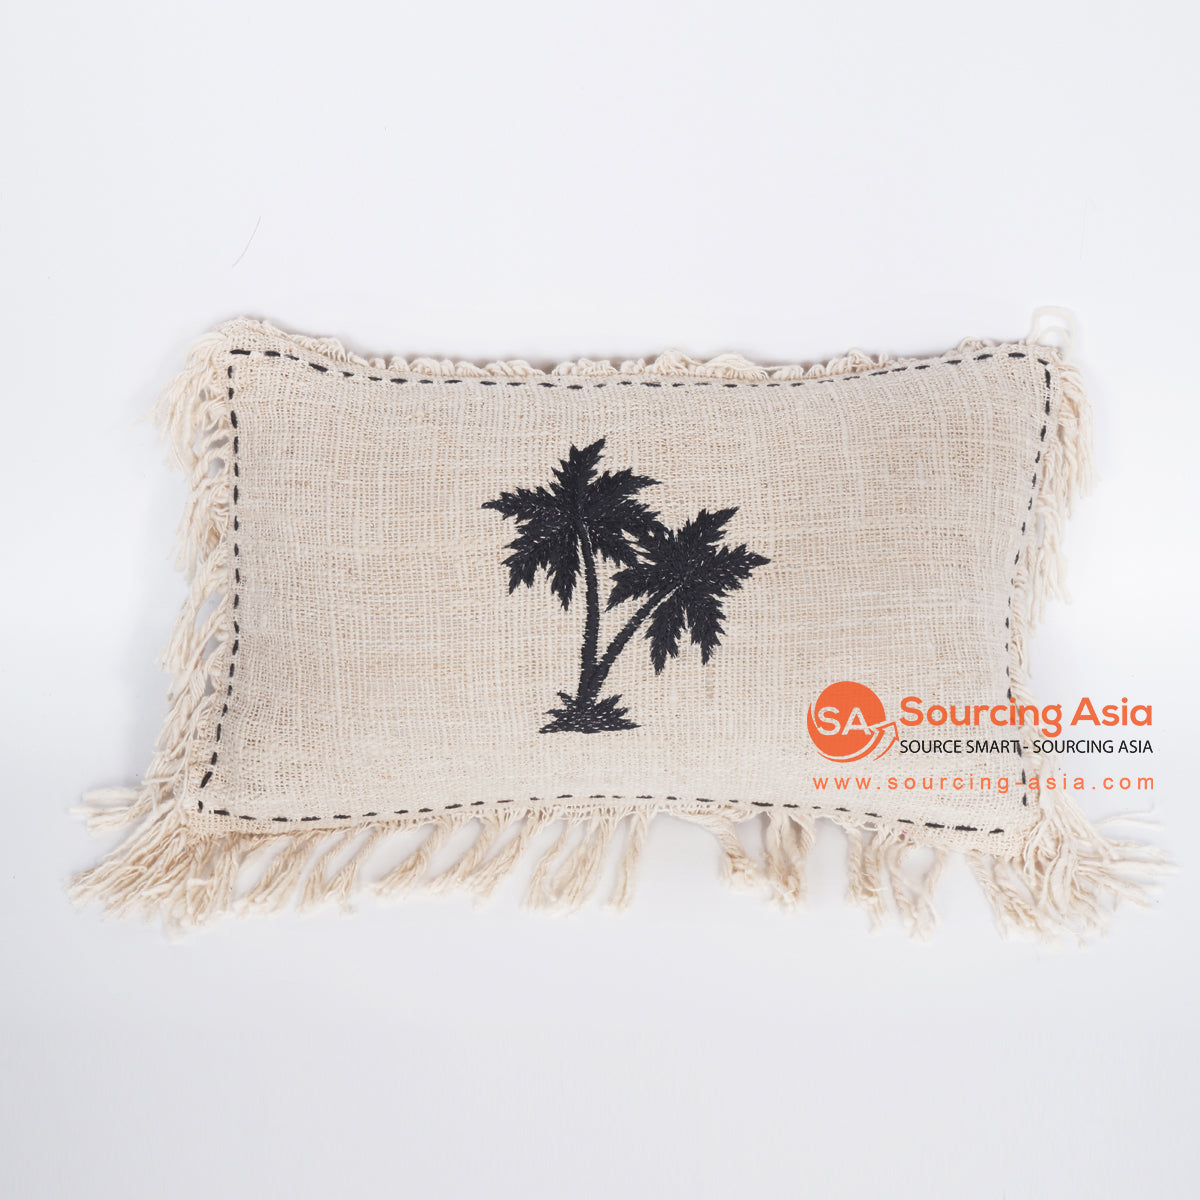 MRC312 NATURAL COTTON COVER CUSHION WITH TWO BLACK PALM TREE EMBROIDERY AND BLACK HANDSTITCHED BORDER